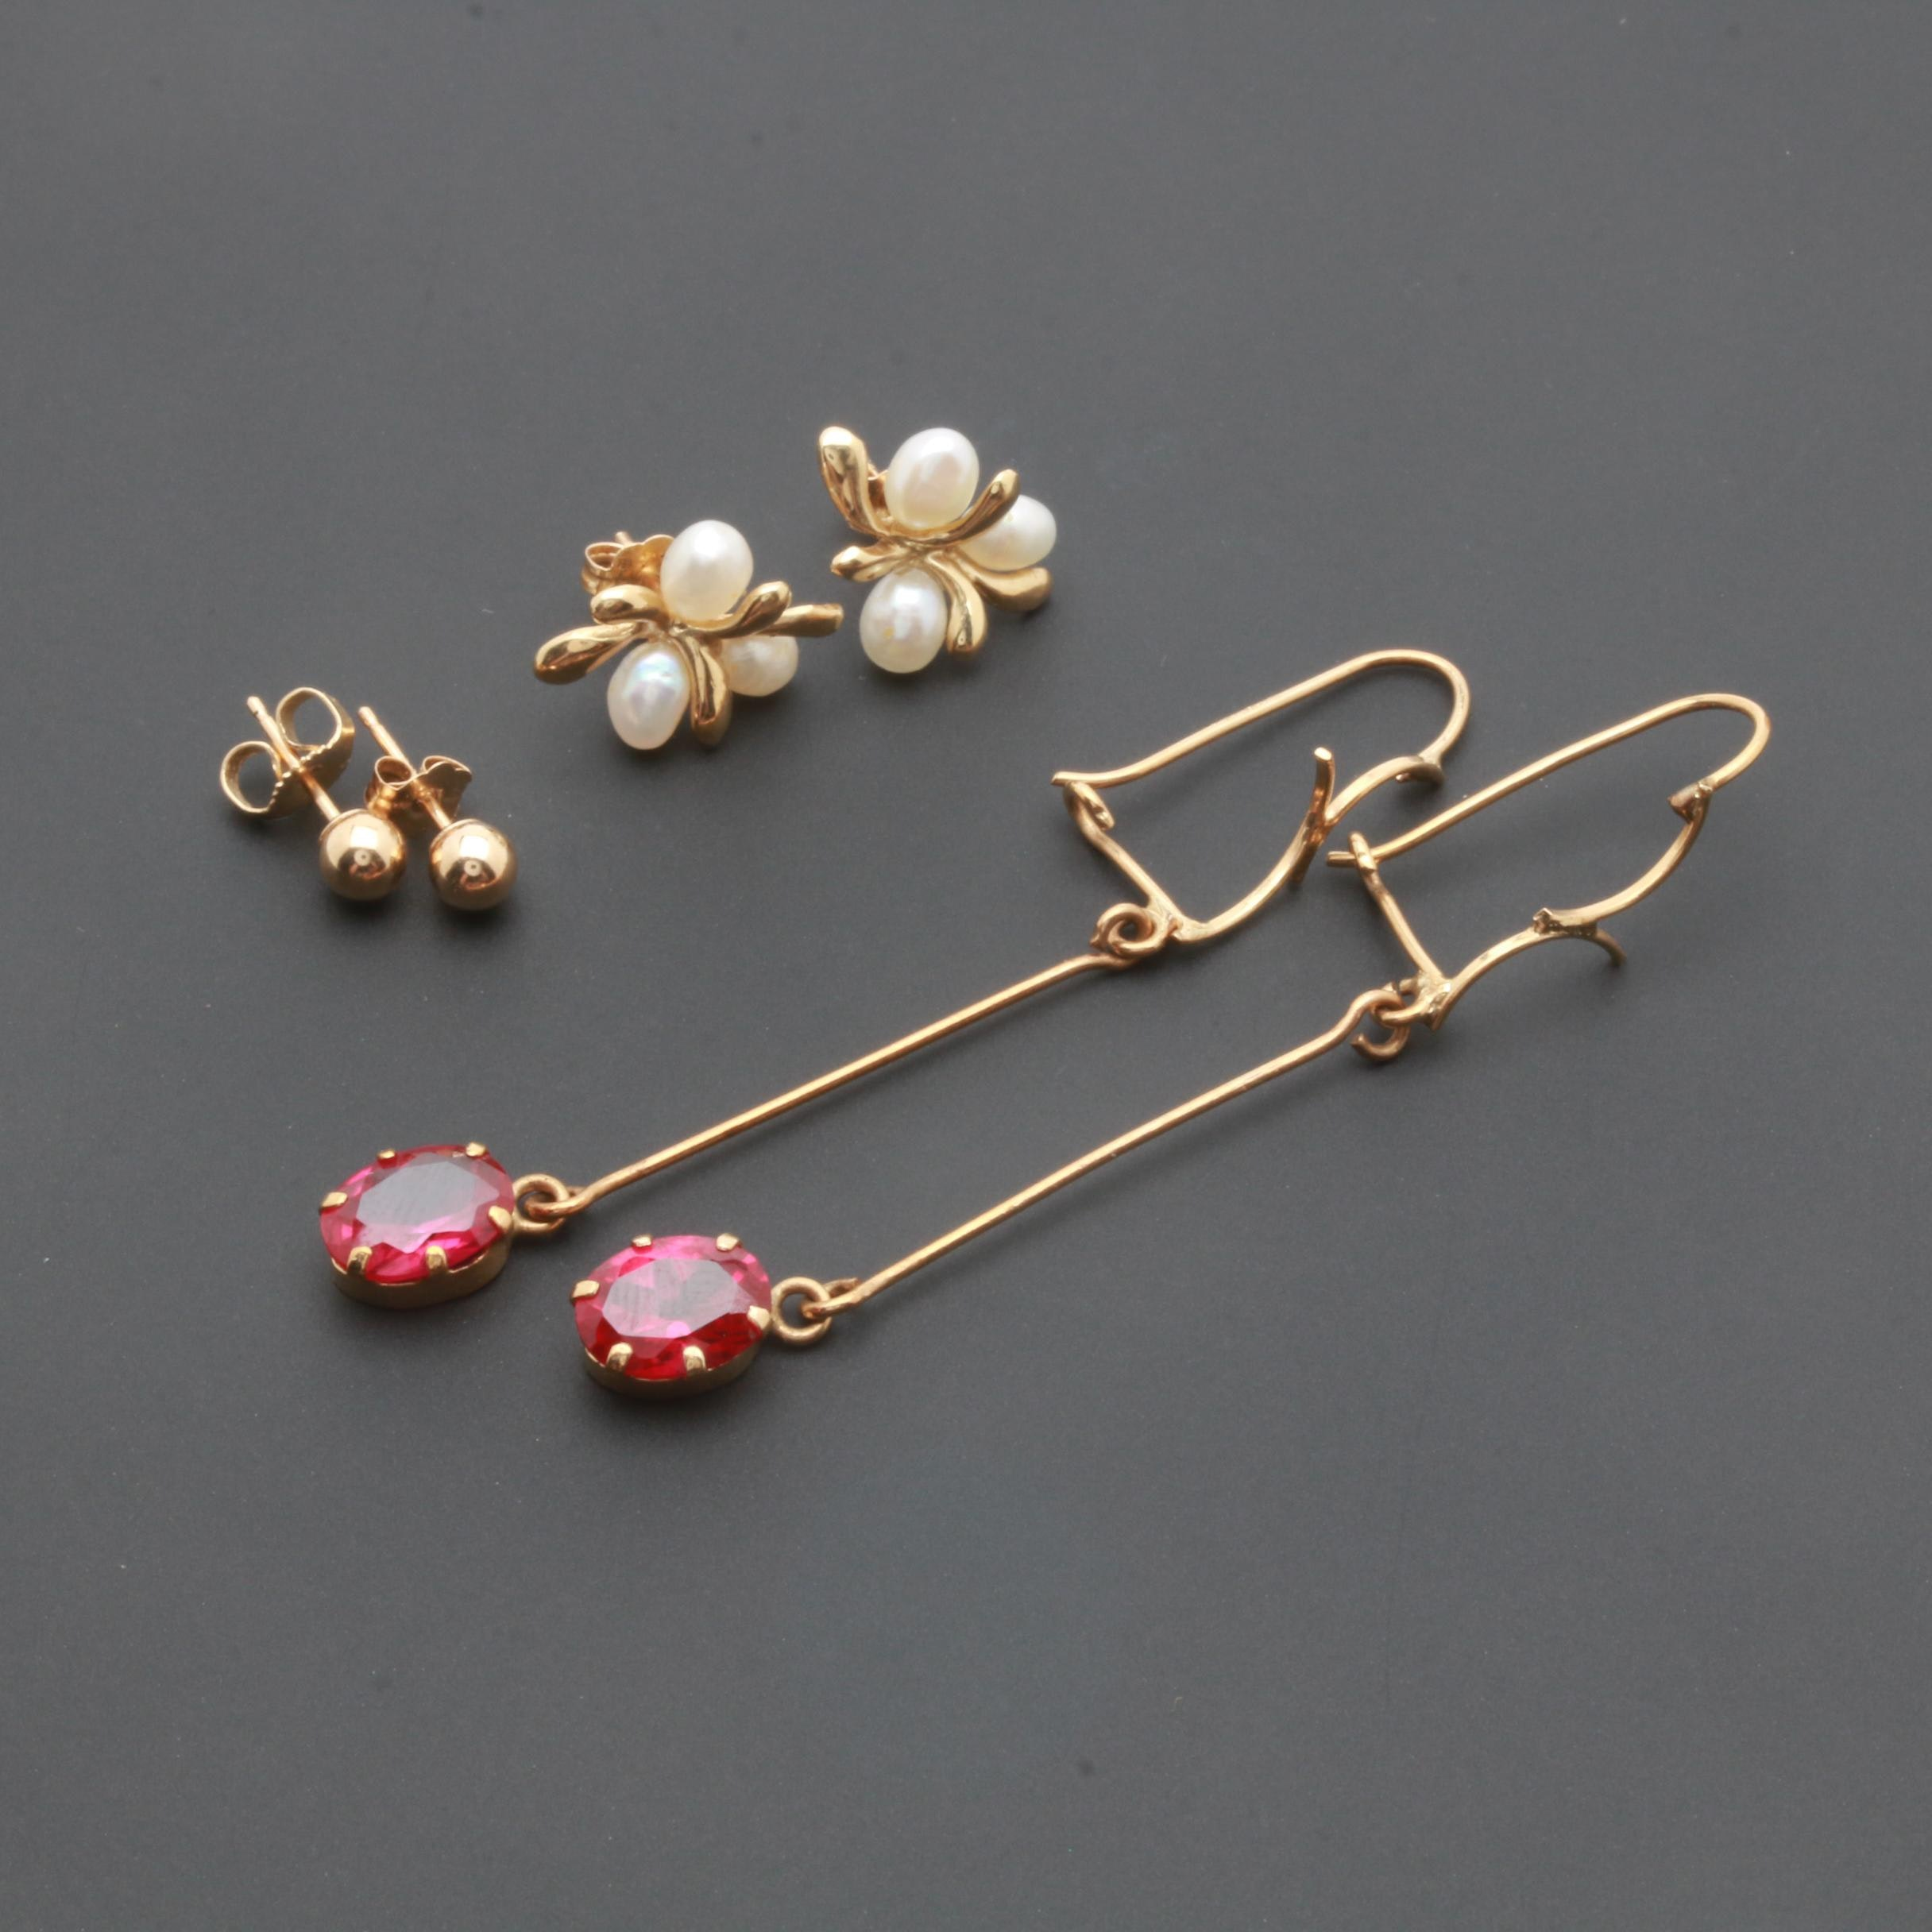 14K Yellow Gold Earring Selection including Cultured Pearl and Synthetic Ruby